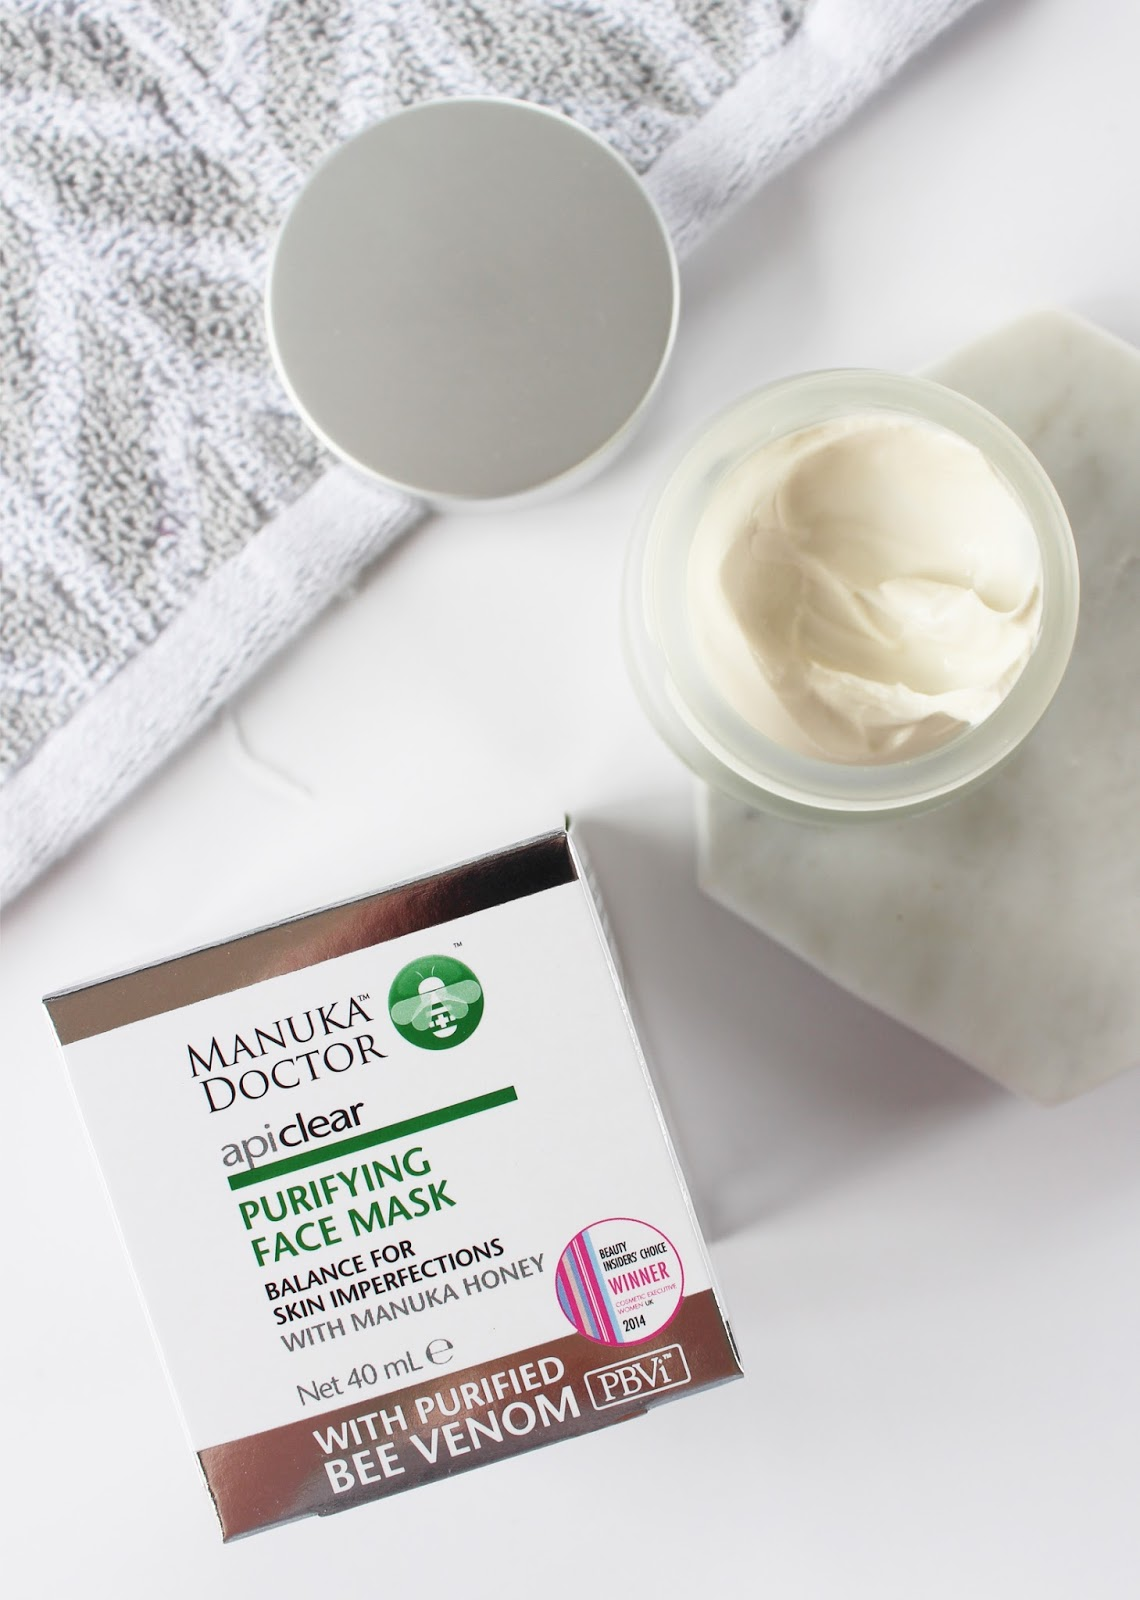 MANUKA DOCTOR | Purifying Face Mask Review - CassandraMyee